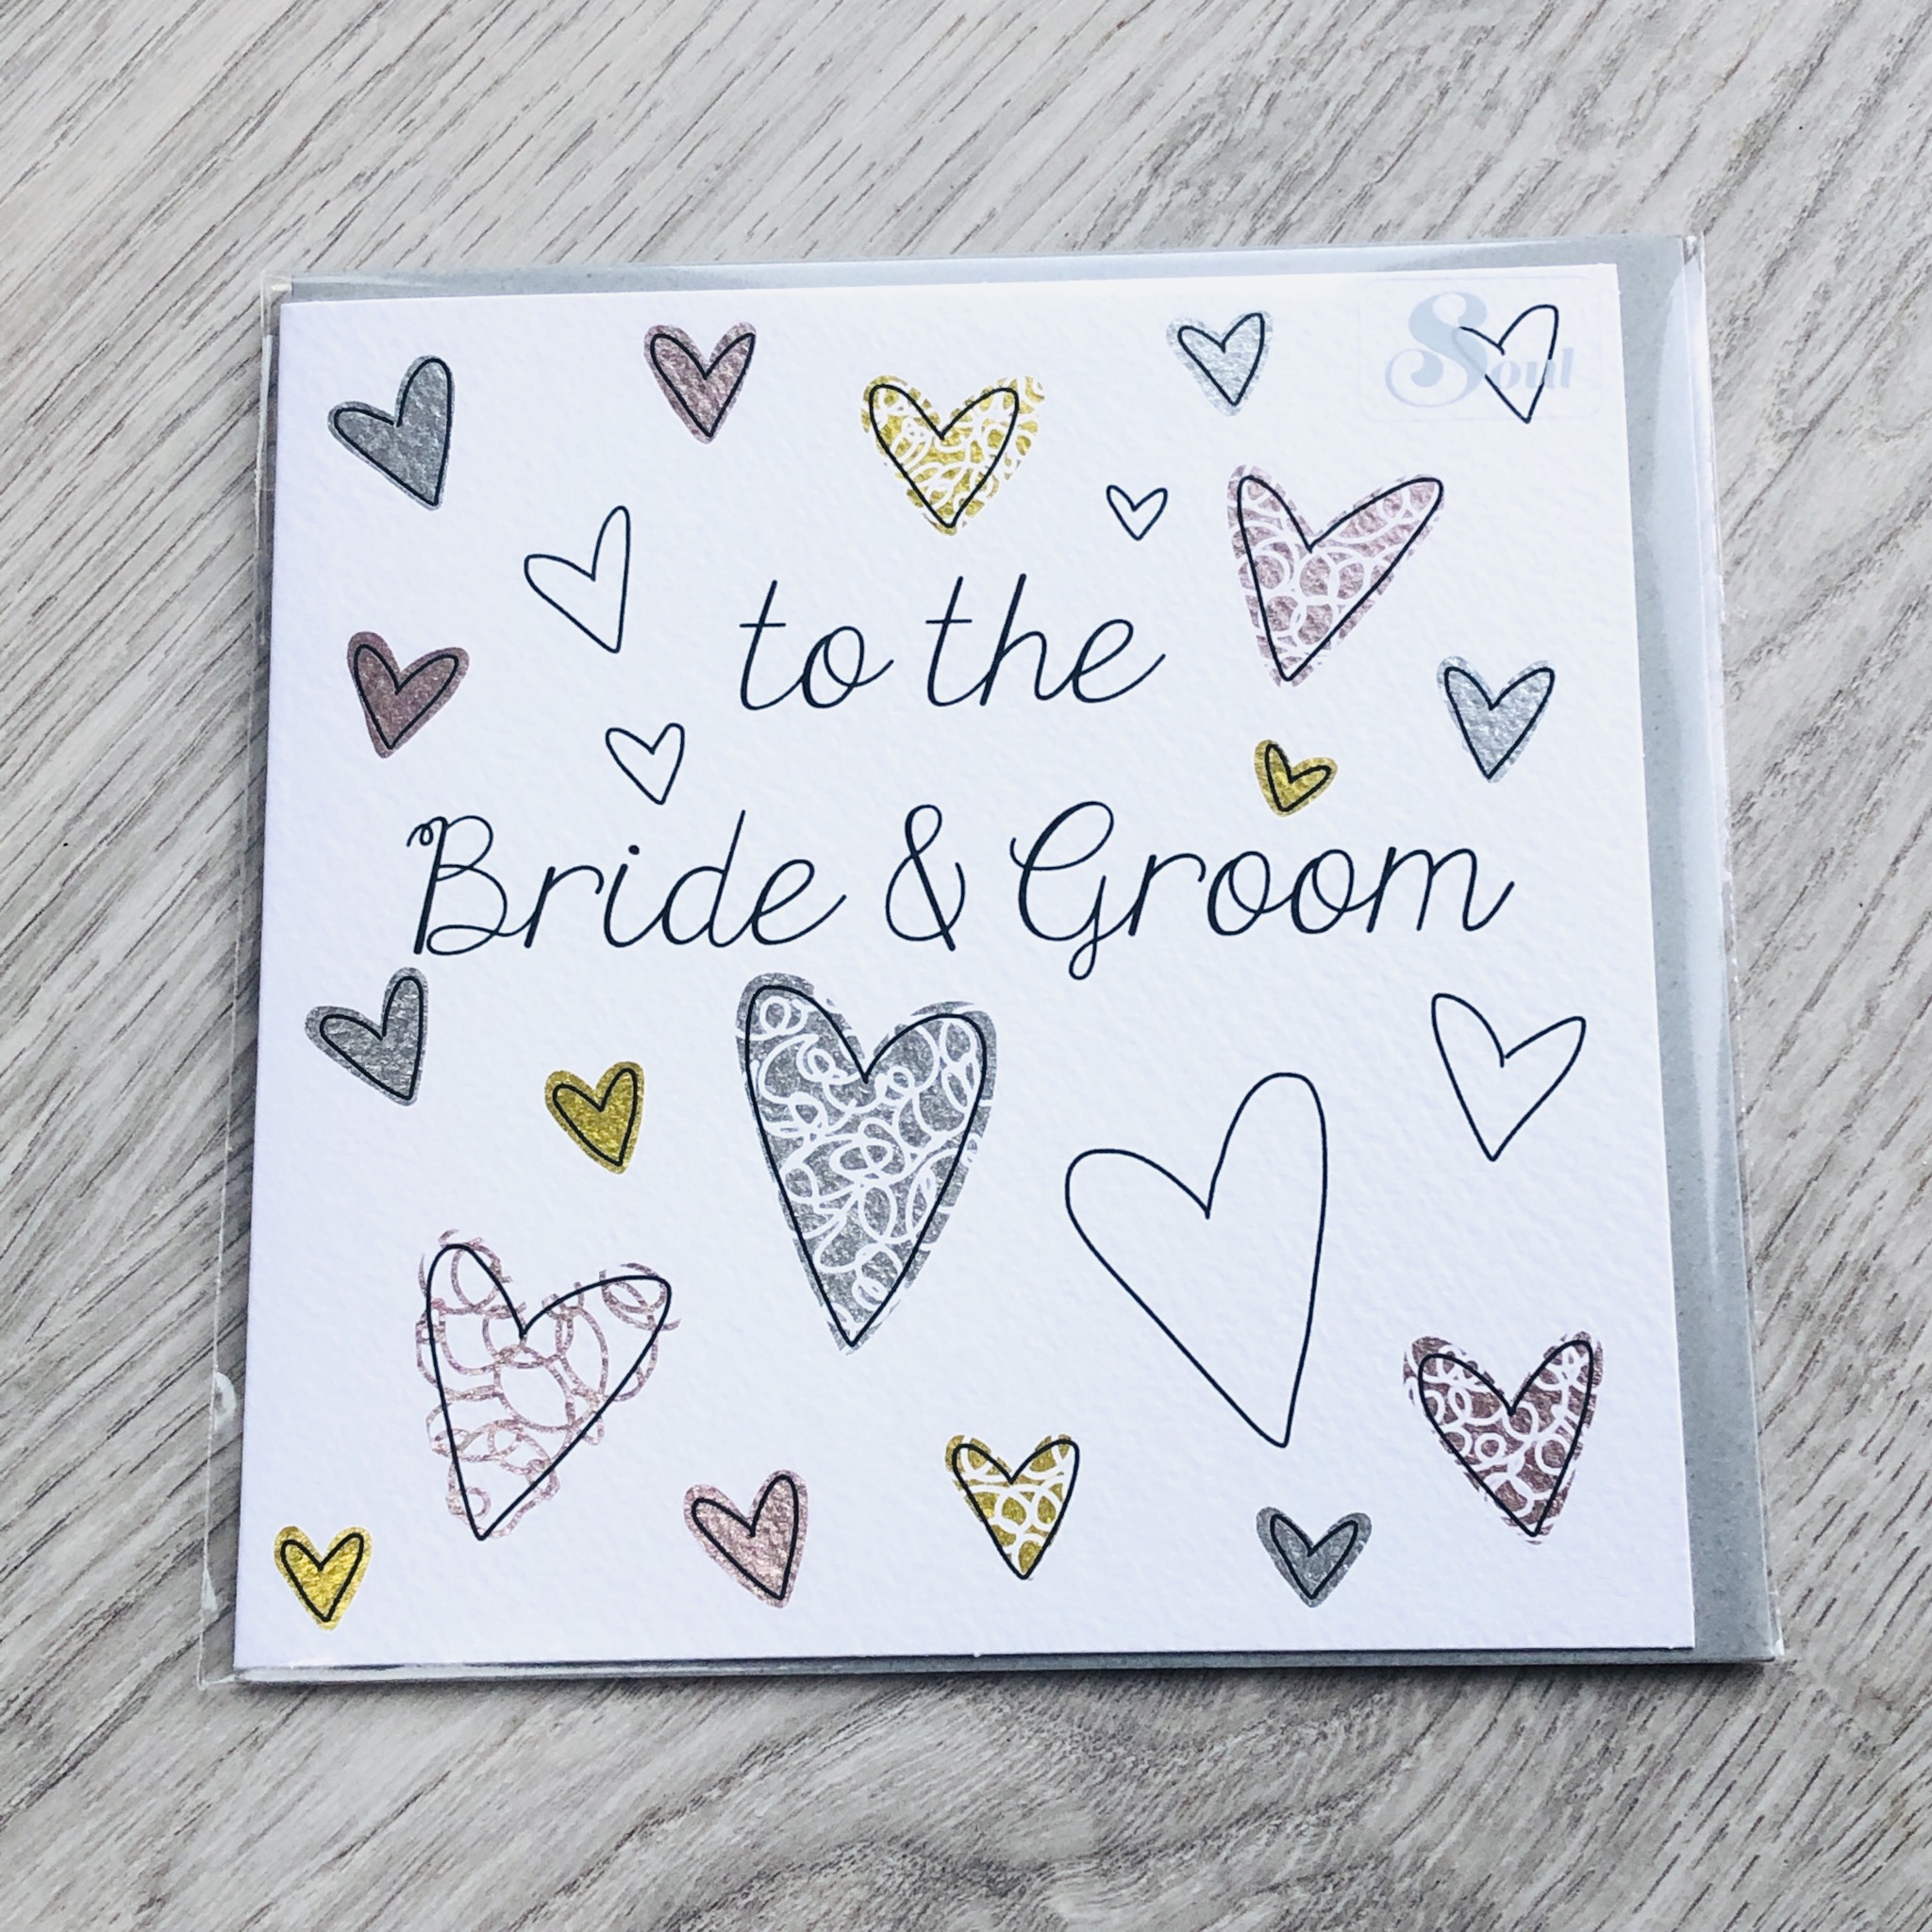 To the bride & groom, wedding card.